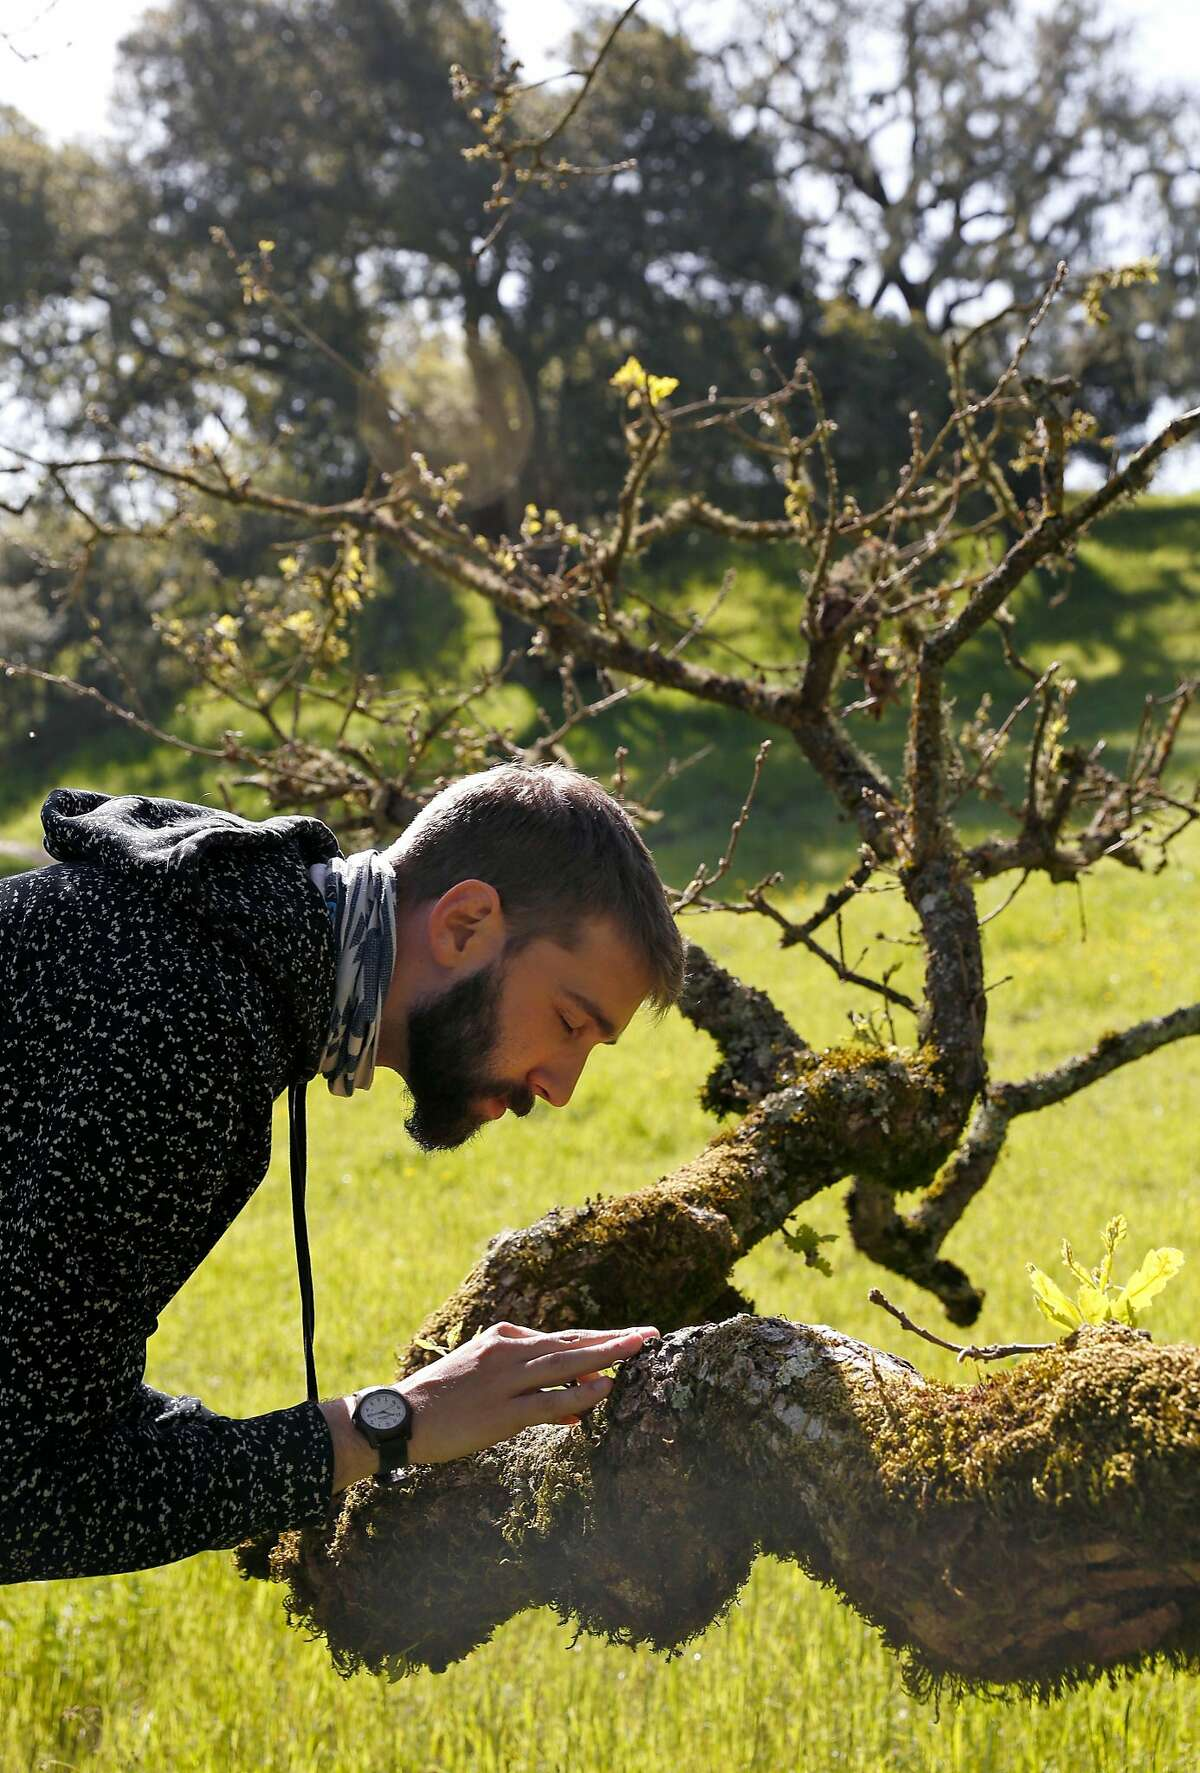 Forest Therapy Guide Ben Page spends some time at Crane Creek Regional Park in Santa Rosa.